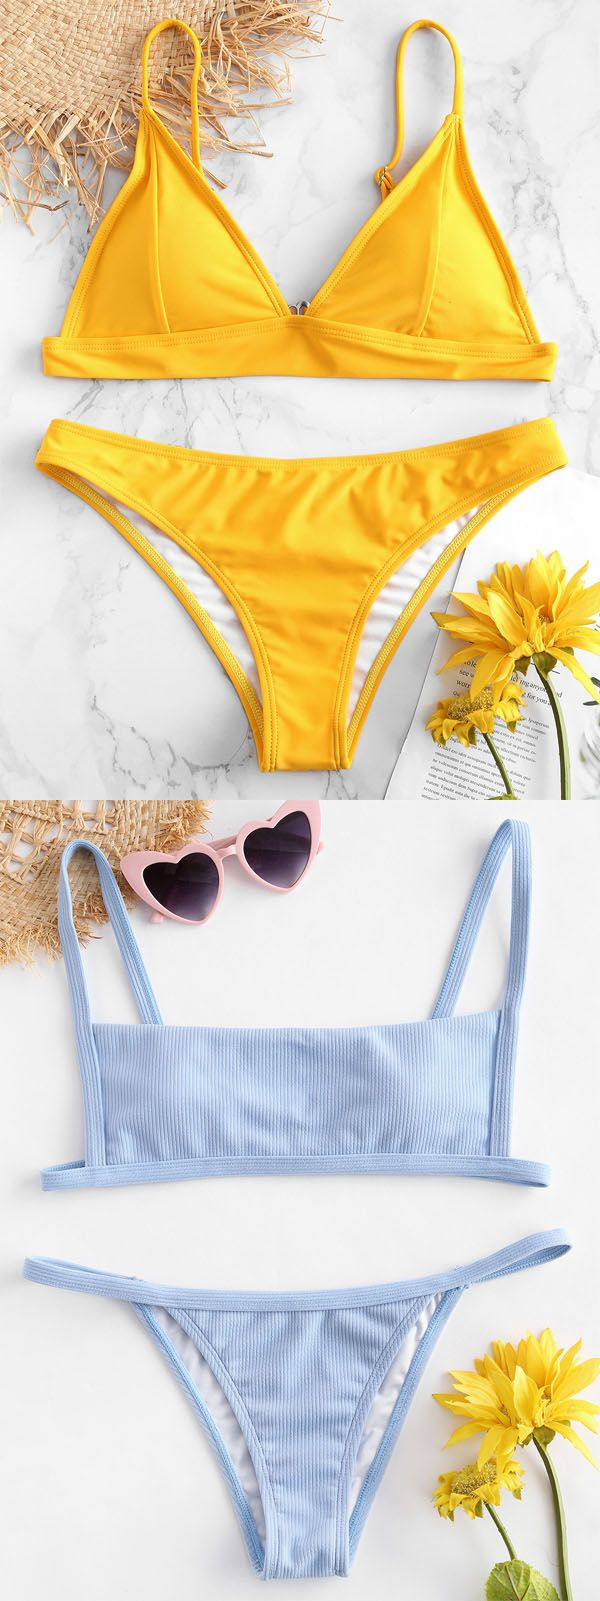 ZAFUL NEW FASHION Chic swimwear from $3.99 APP conclusive more discount!#ZAFUL#BIKINI